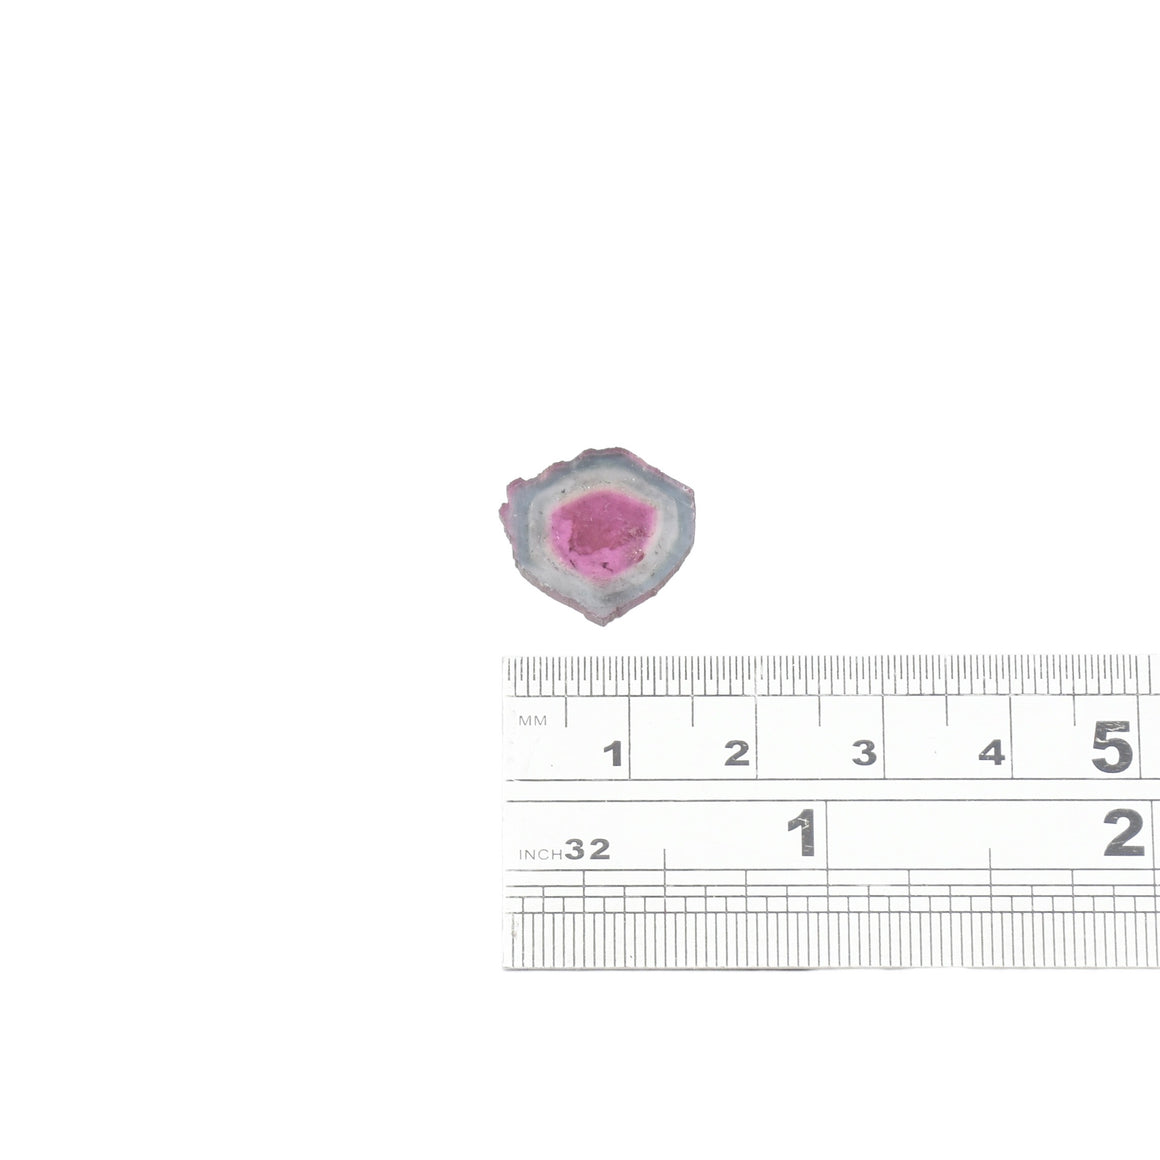 5.87ct Pale blue edge, pale pink core